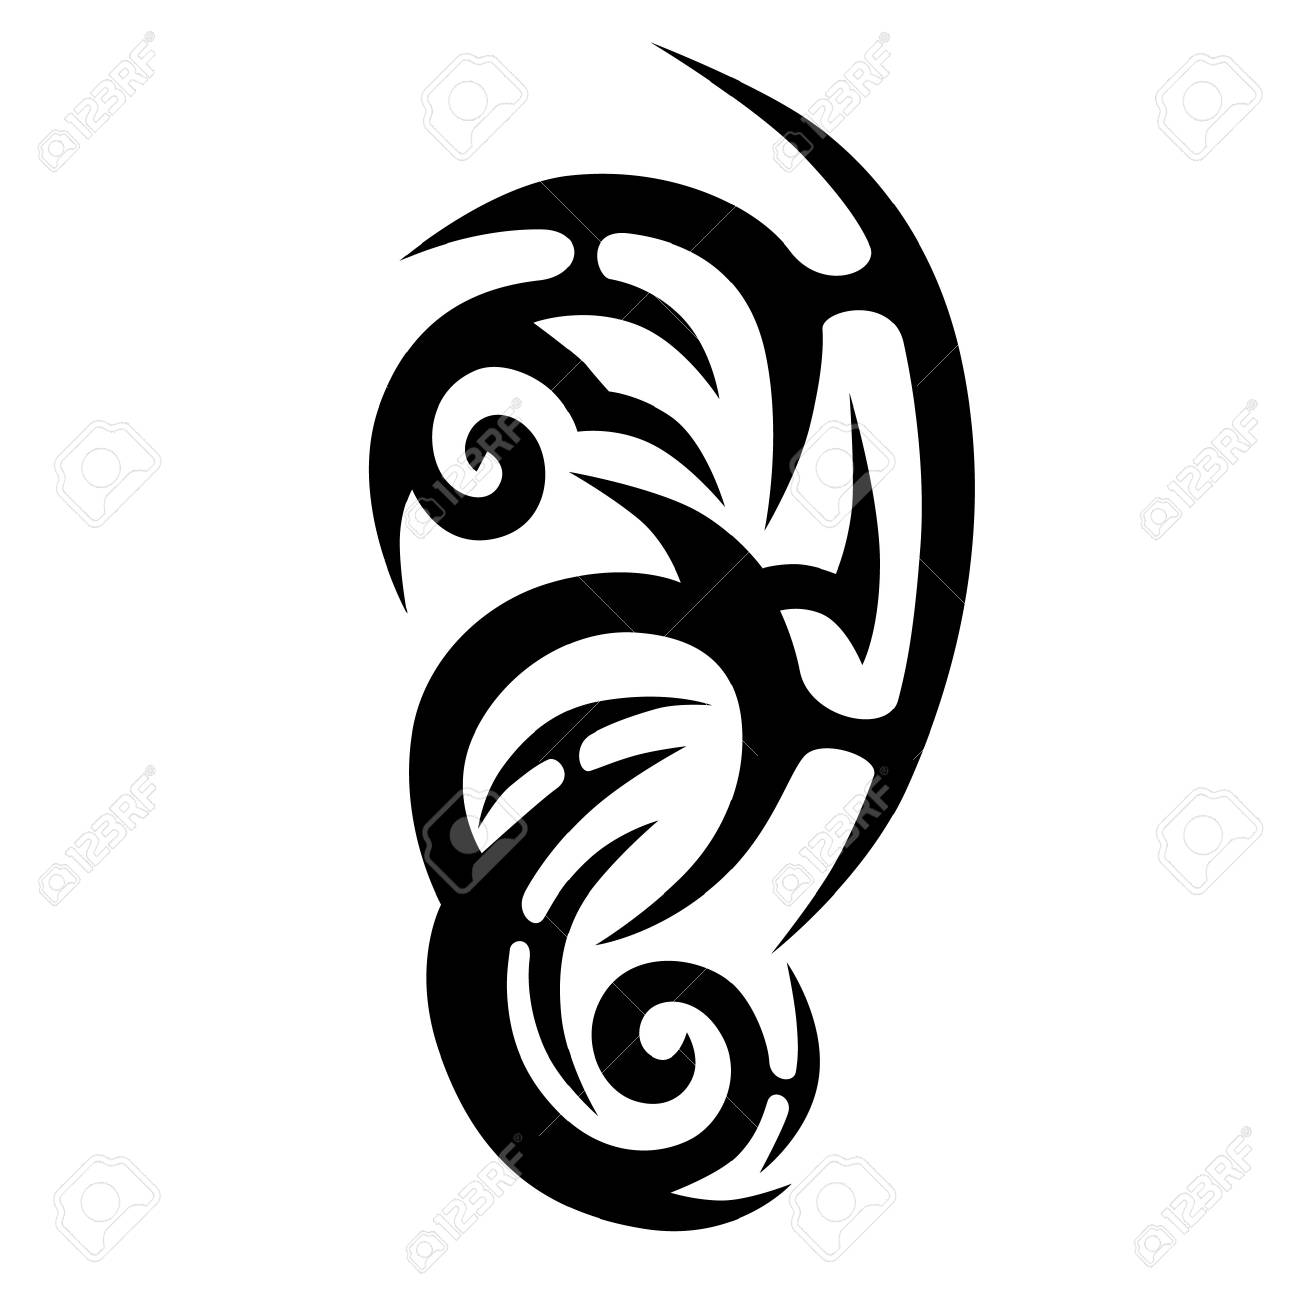 Tattoo Tribal Vector Designs Tribal Tattoos Art Tribal Tattoo Royalty Free Cliparts Vectors And Stock Illustration Image 74872736 From the collection of how is made here is a speed painting tattoo using adobe illustrator.this movie show you how we do our graphics from the. tattoo tribal vector designs tribal tattoos art tribal tattoo